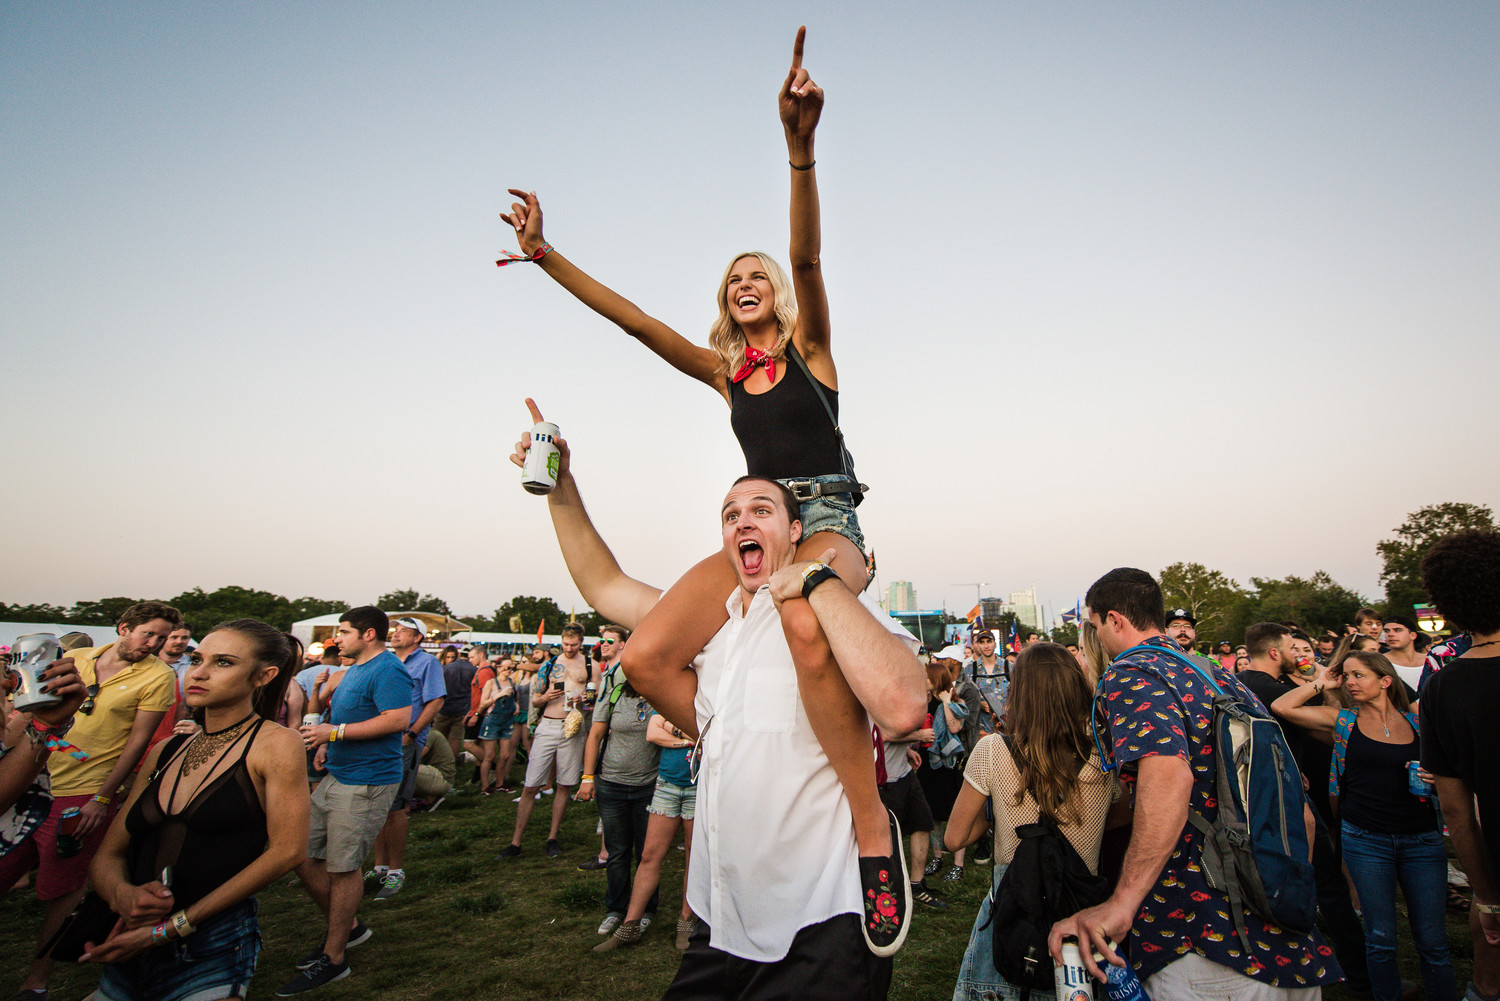 Fans cheer during Austin City Limits music festival, Friday, Oct. 6.